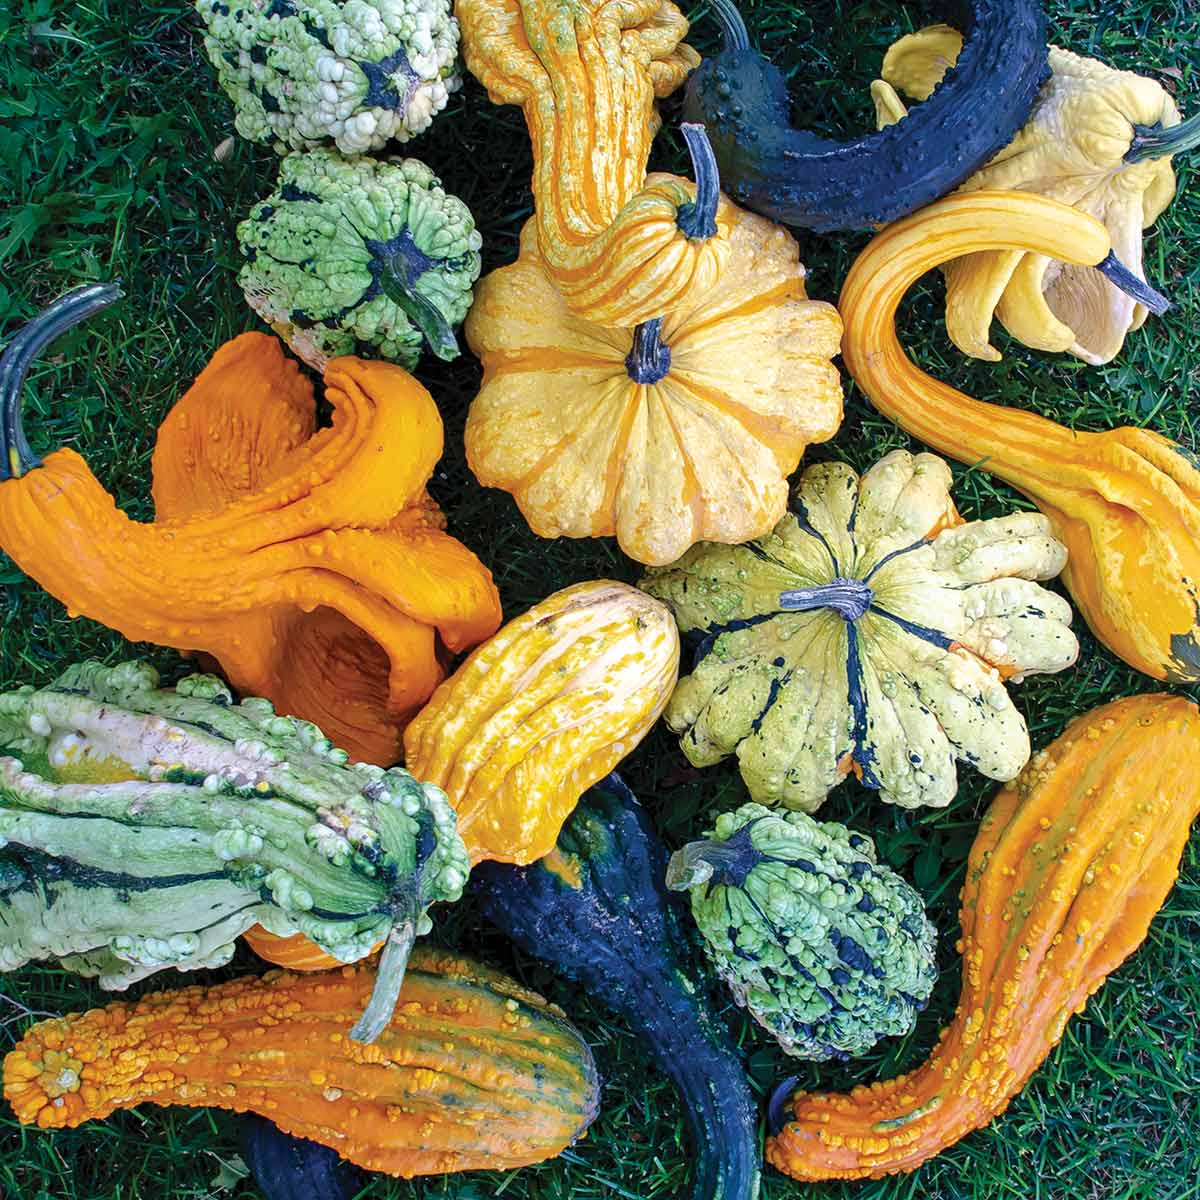 50+SMALL MIXED GOURDS Seeds Hard Shell Type-Crafts Autumn Decoration Baskets